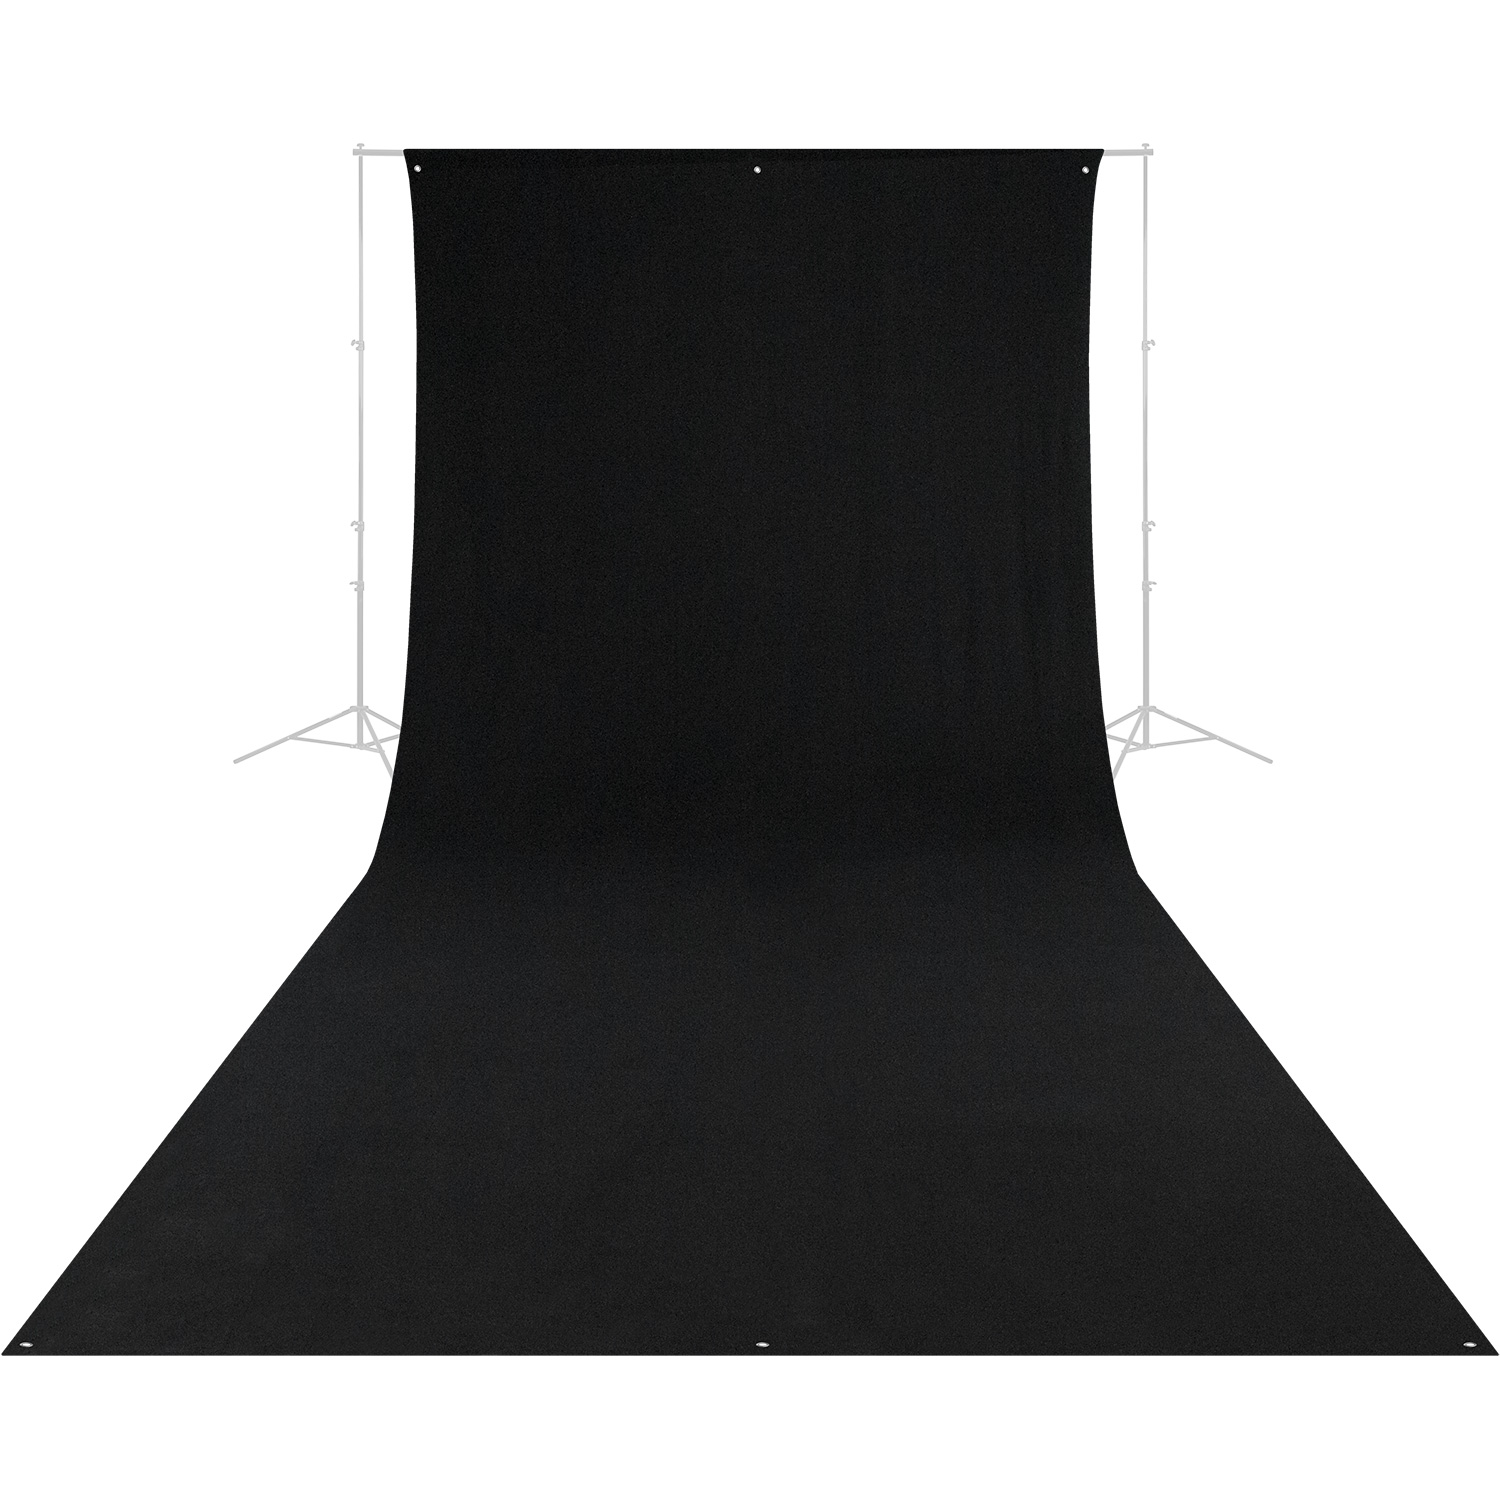 Wrinkle-Resistant Backdrop - Rich Black (9' x 20')